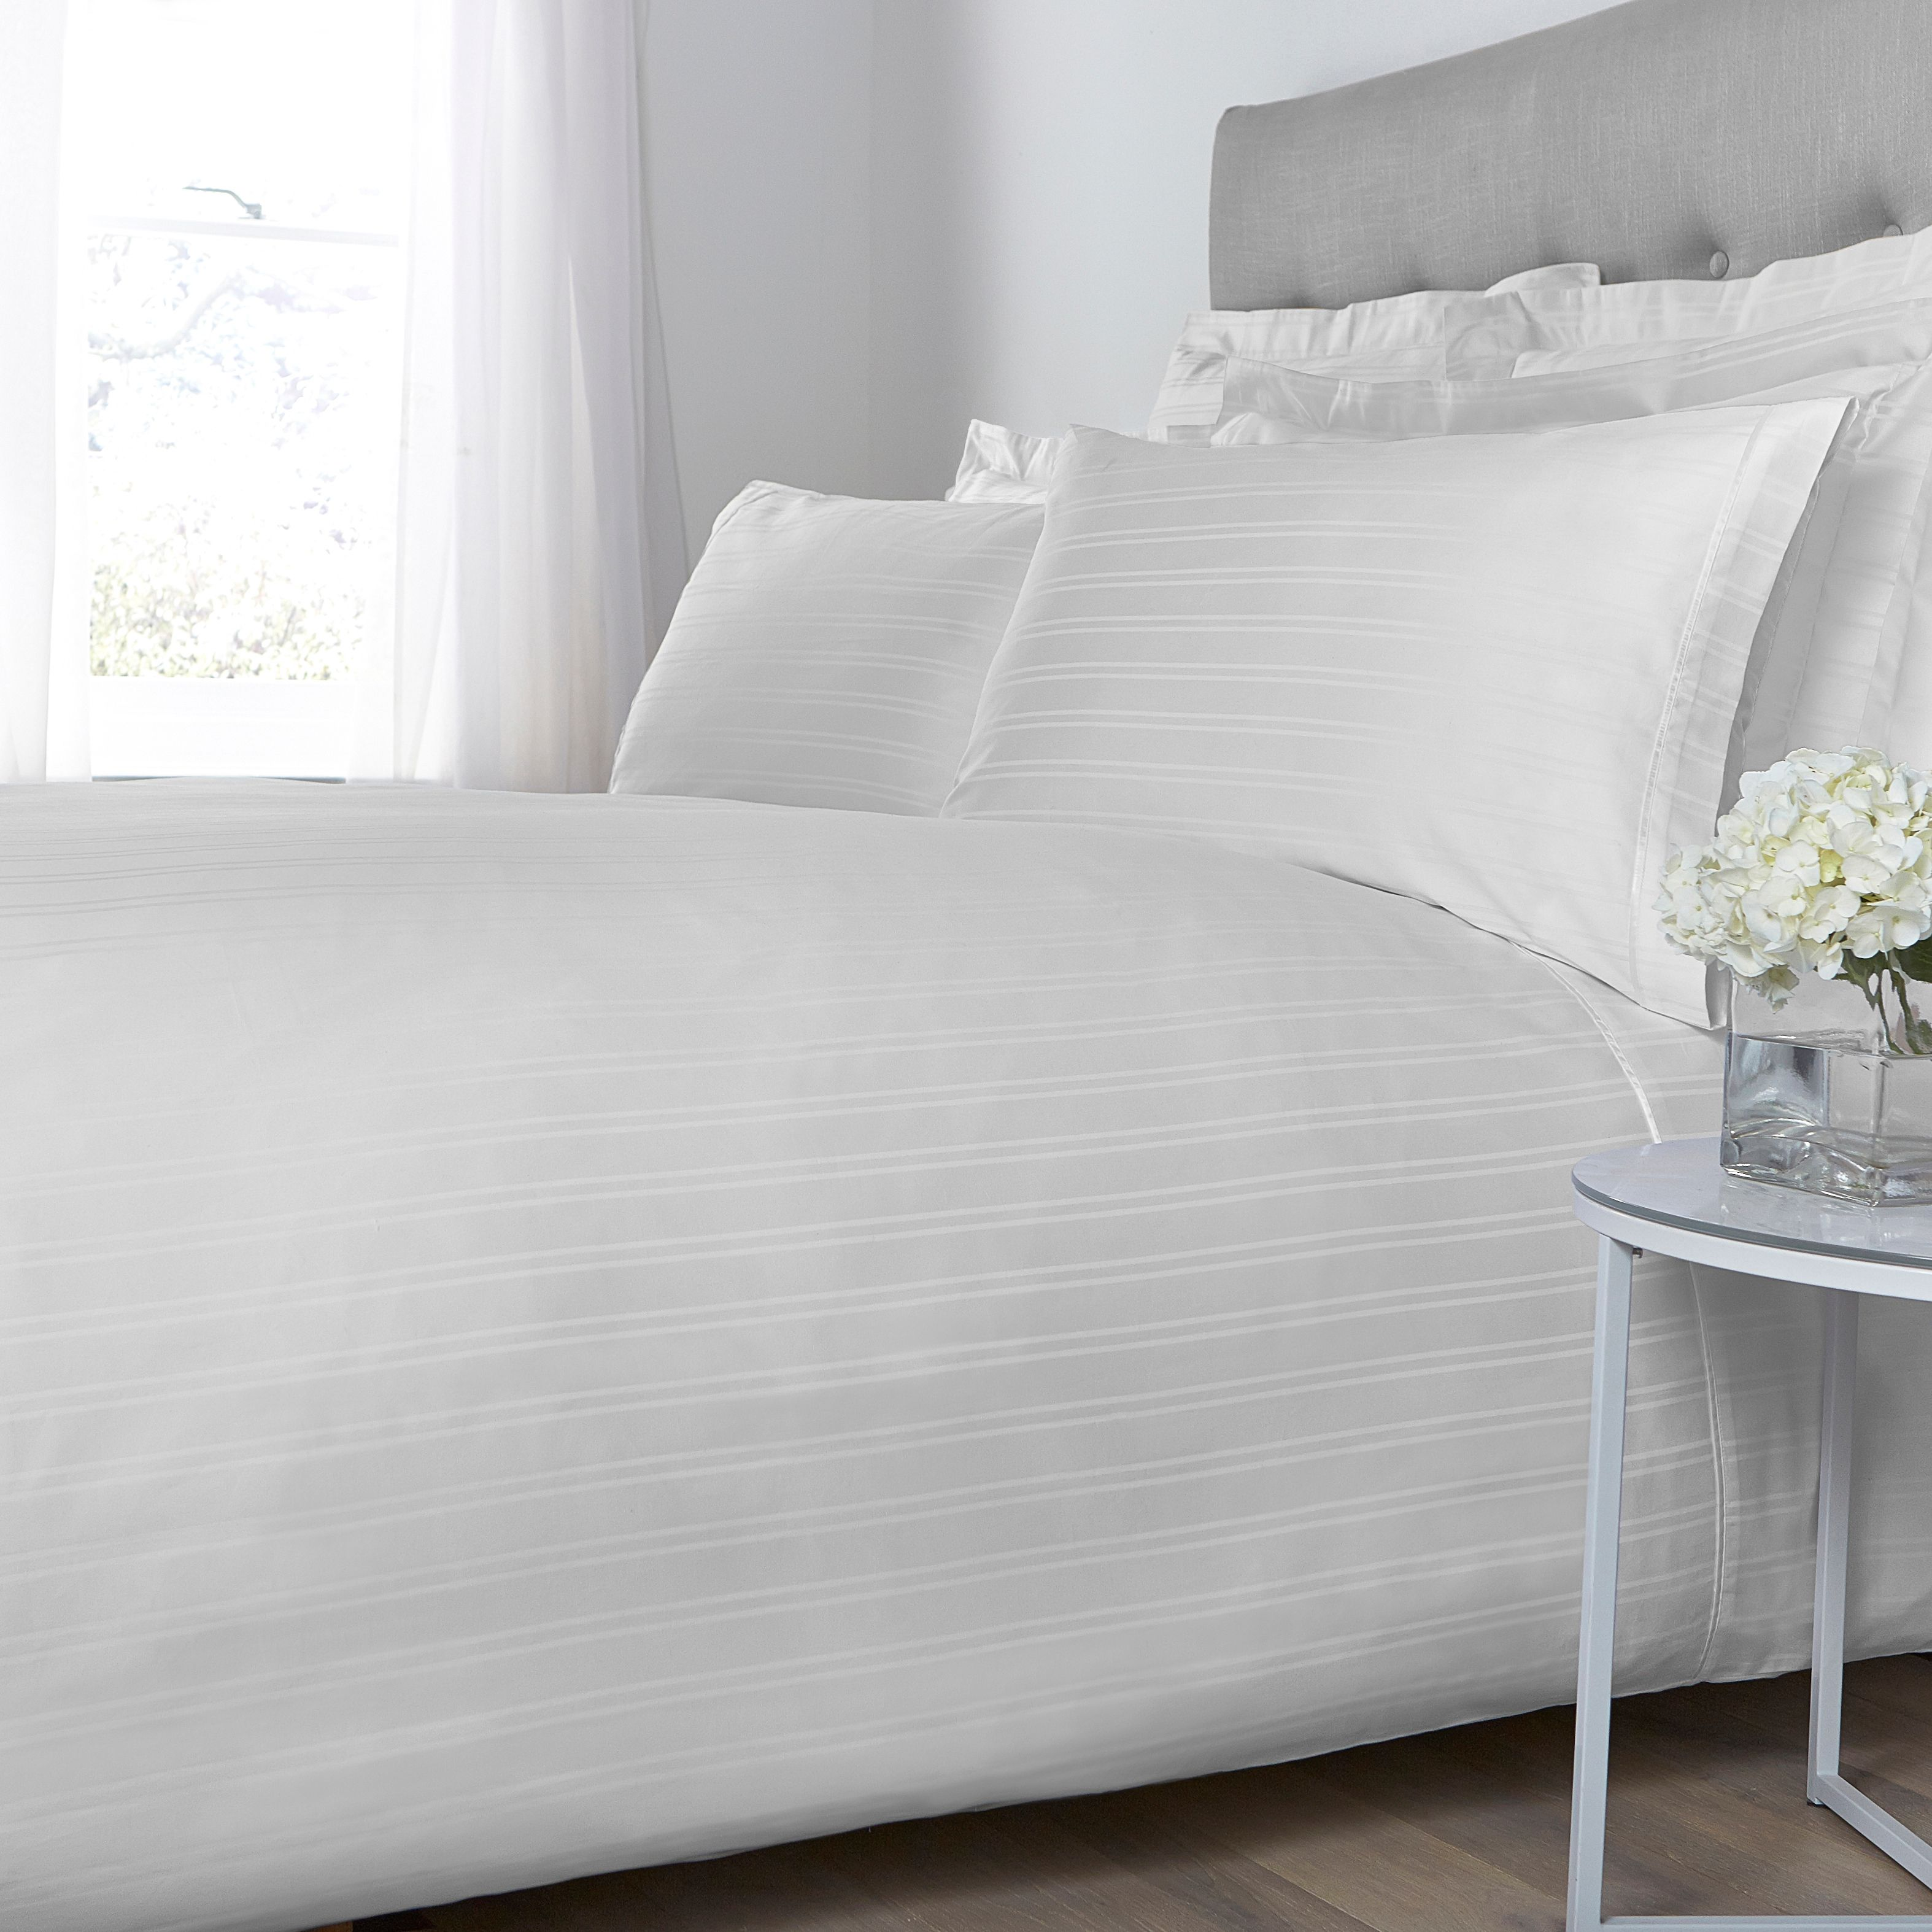 hotel collection sheets luxury hotel collection woven stripe fitted sheet review 12757